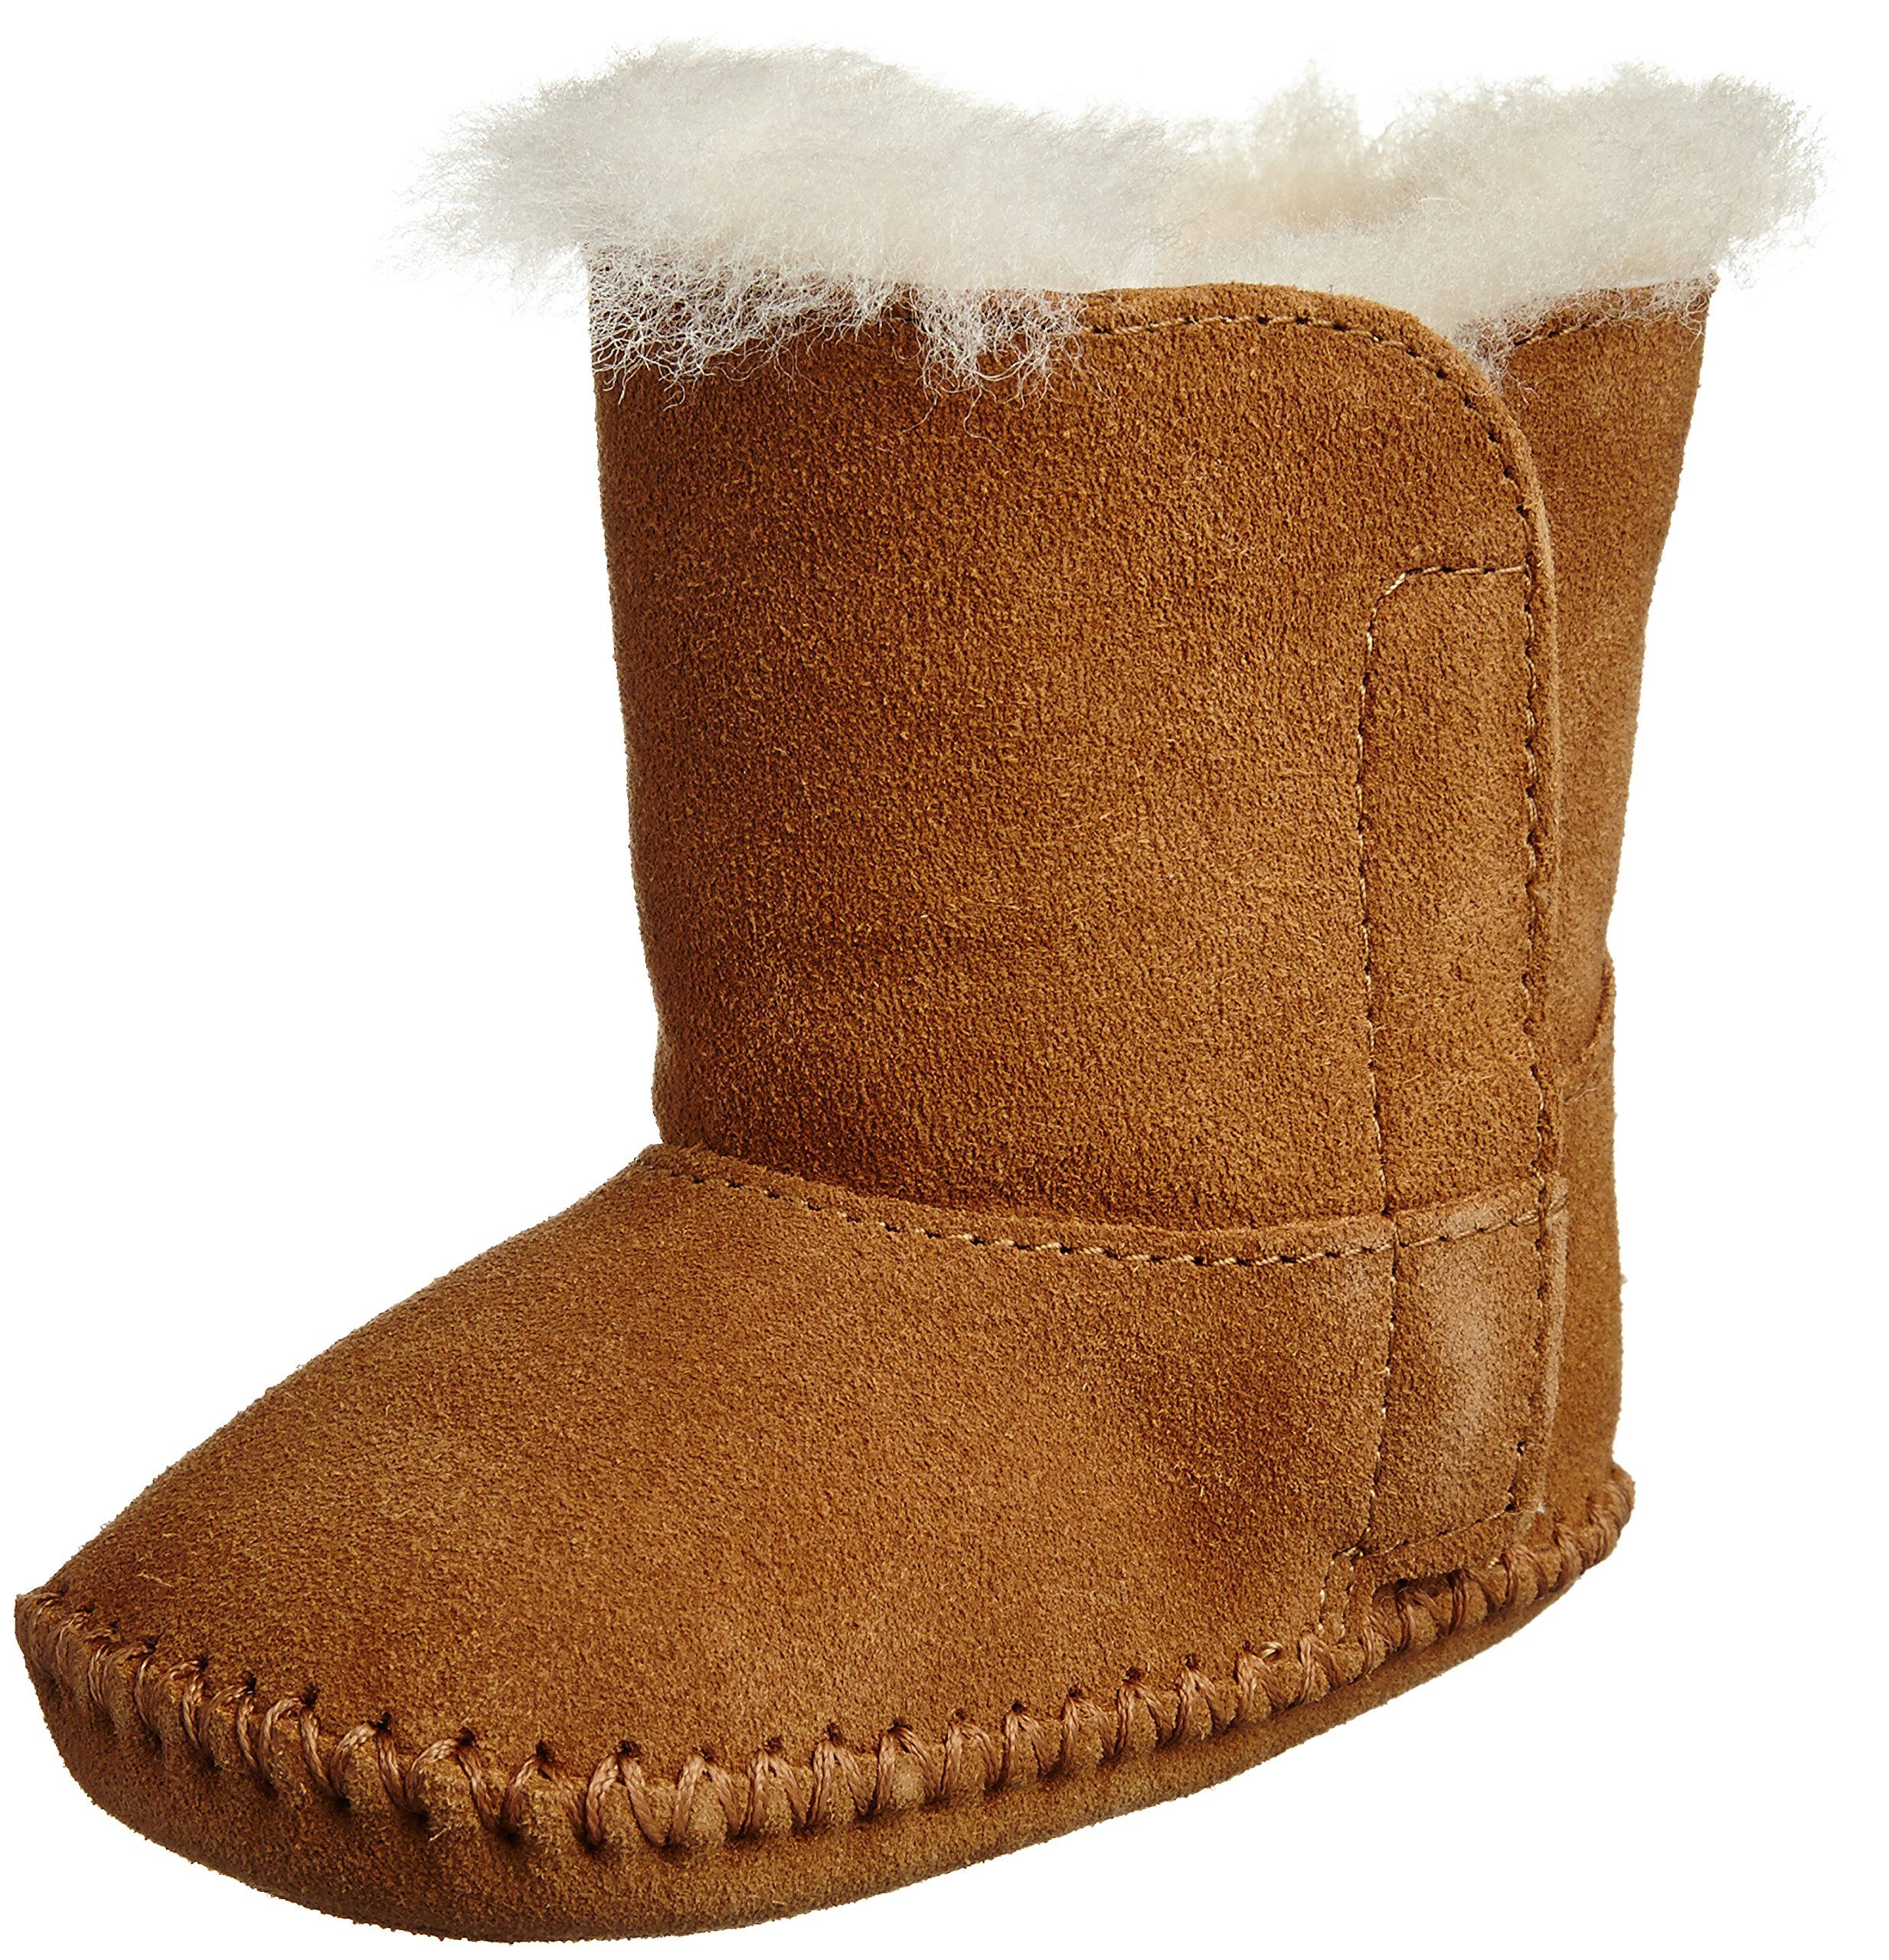 UGG Australia Kid's Caden Chestnut Sheepskin Boot 0/1 (0-6 Months) M US